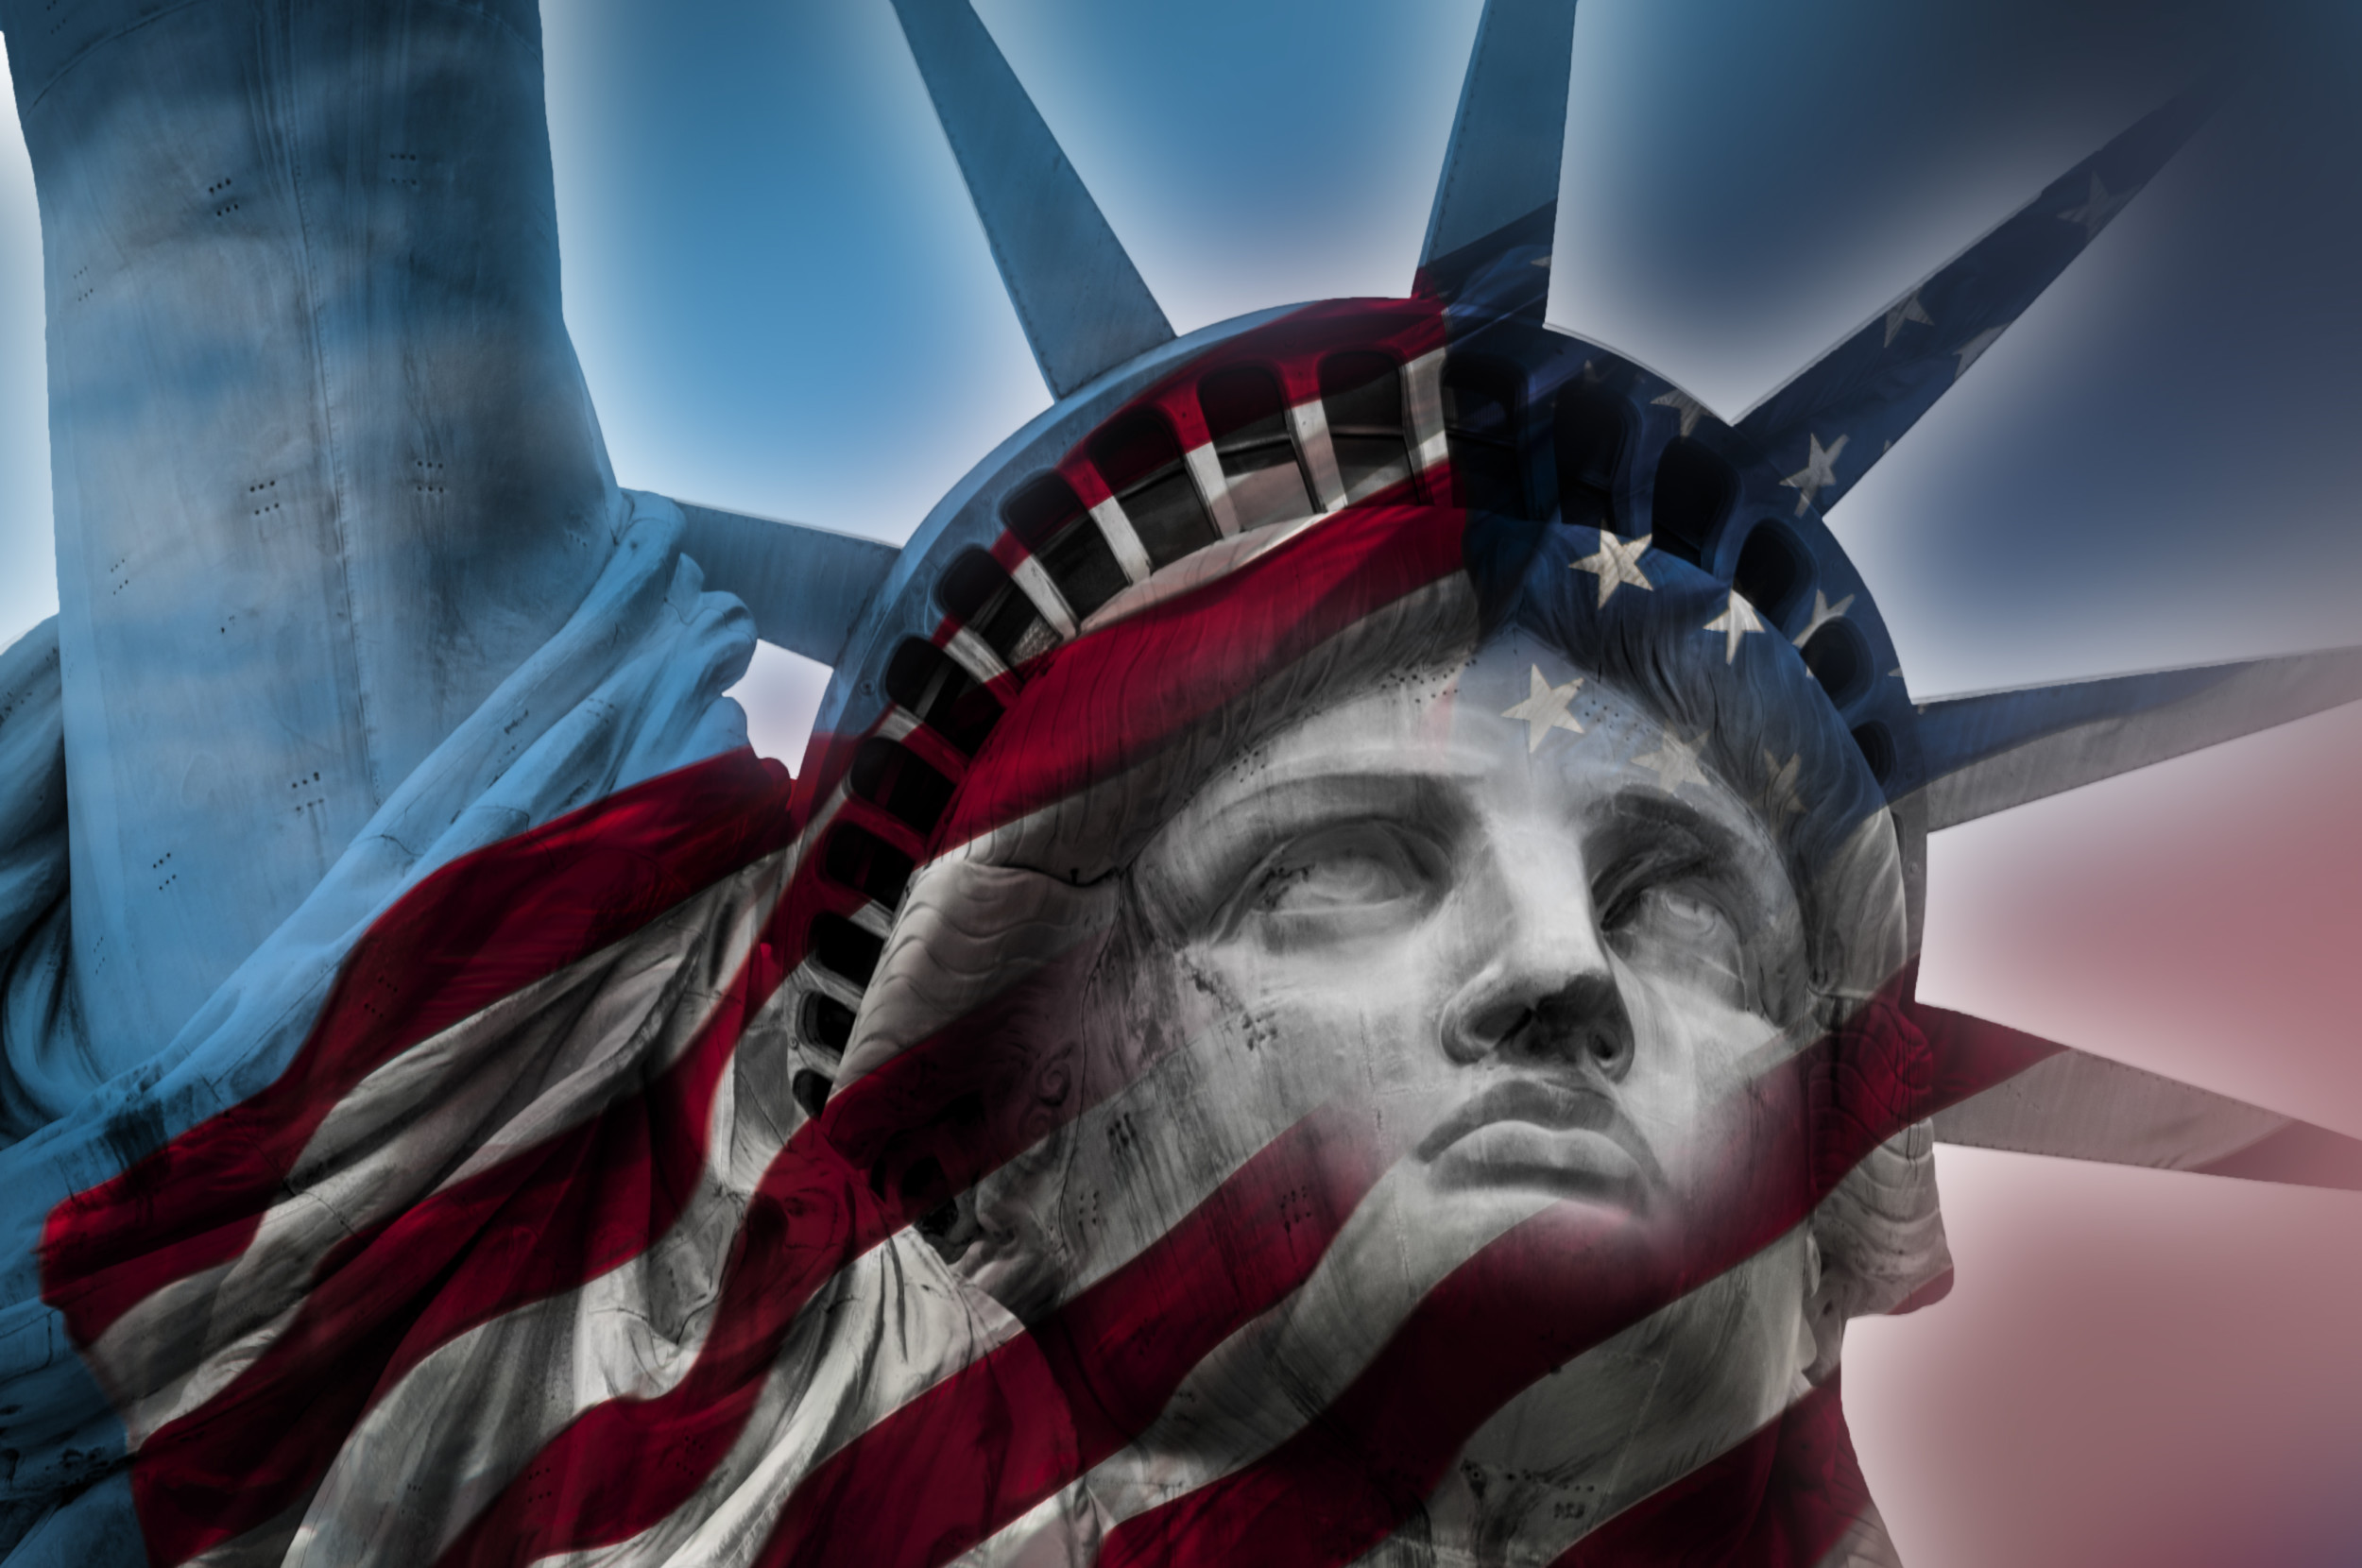 Double exposure image of the Statue of Liberty and the American flag